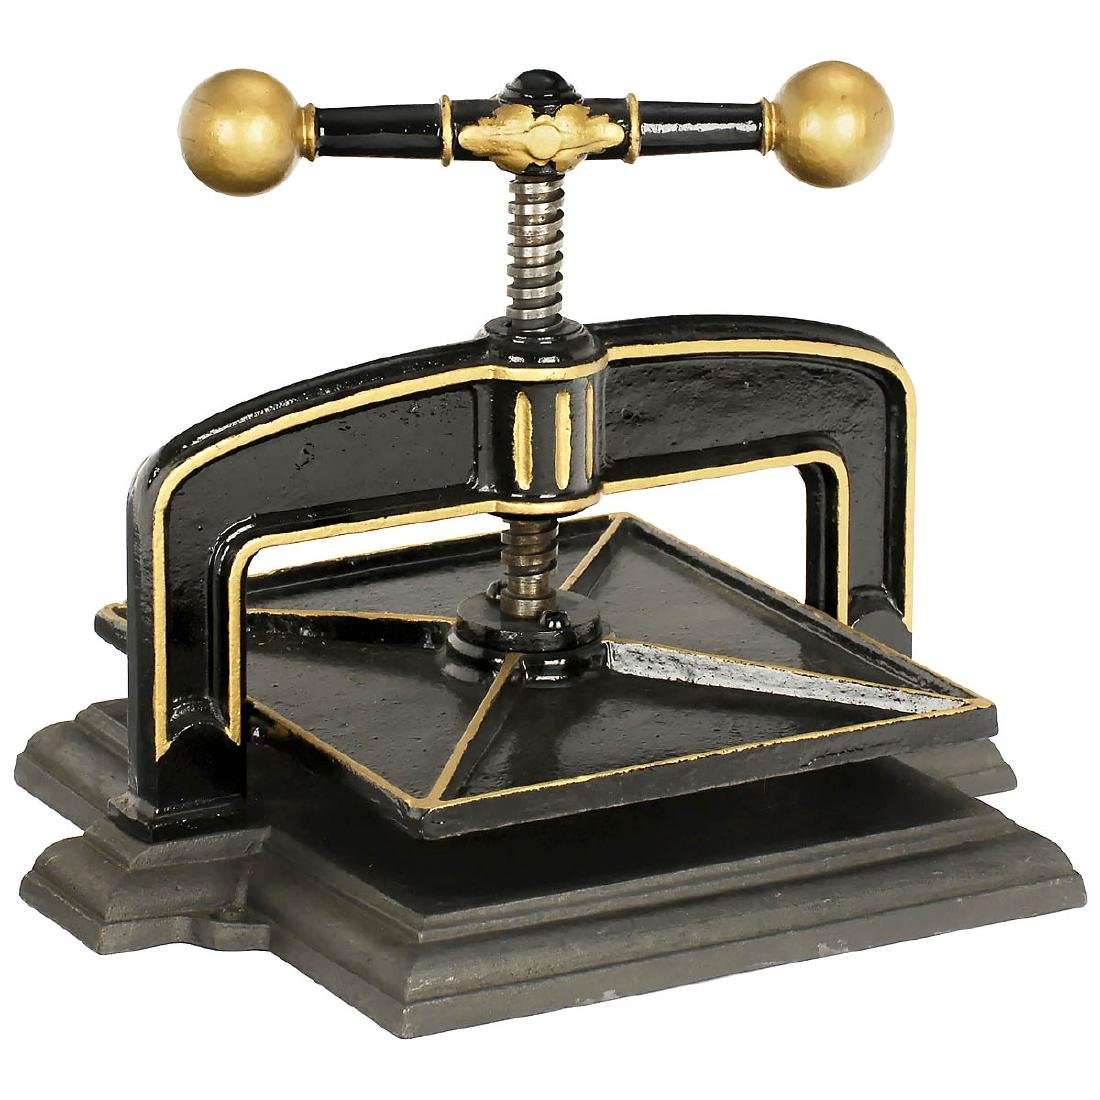 Cast-Iron Book Press, c. 1880